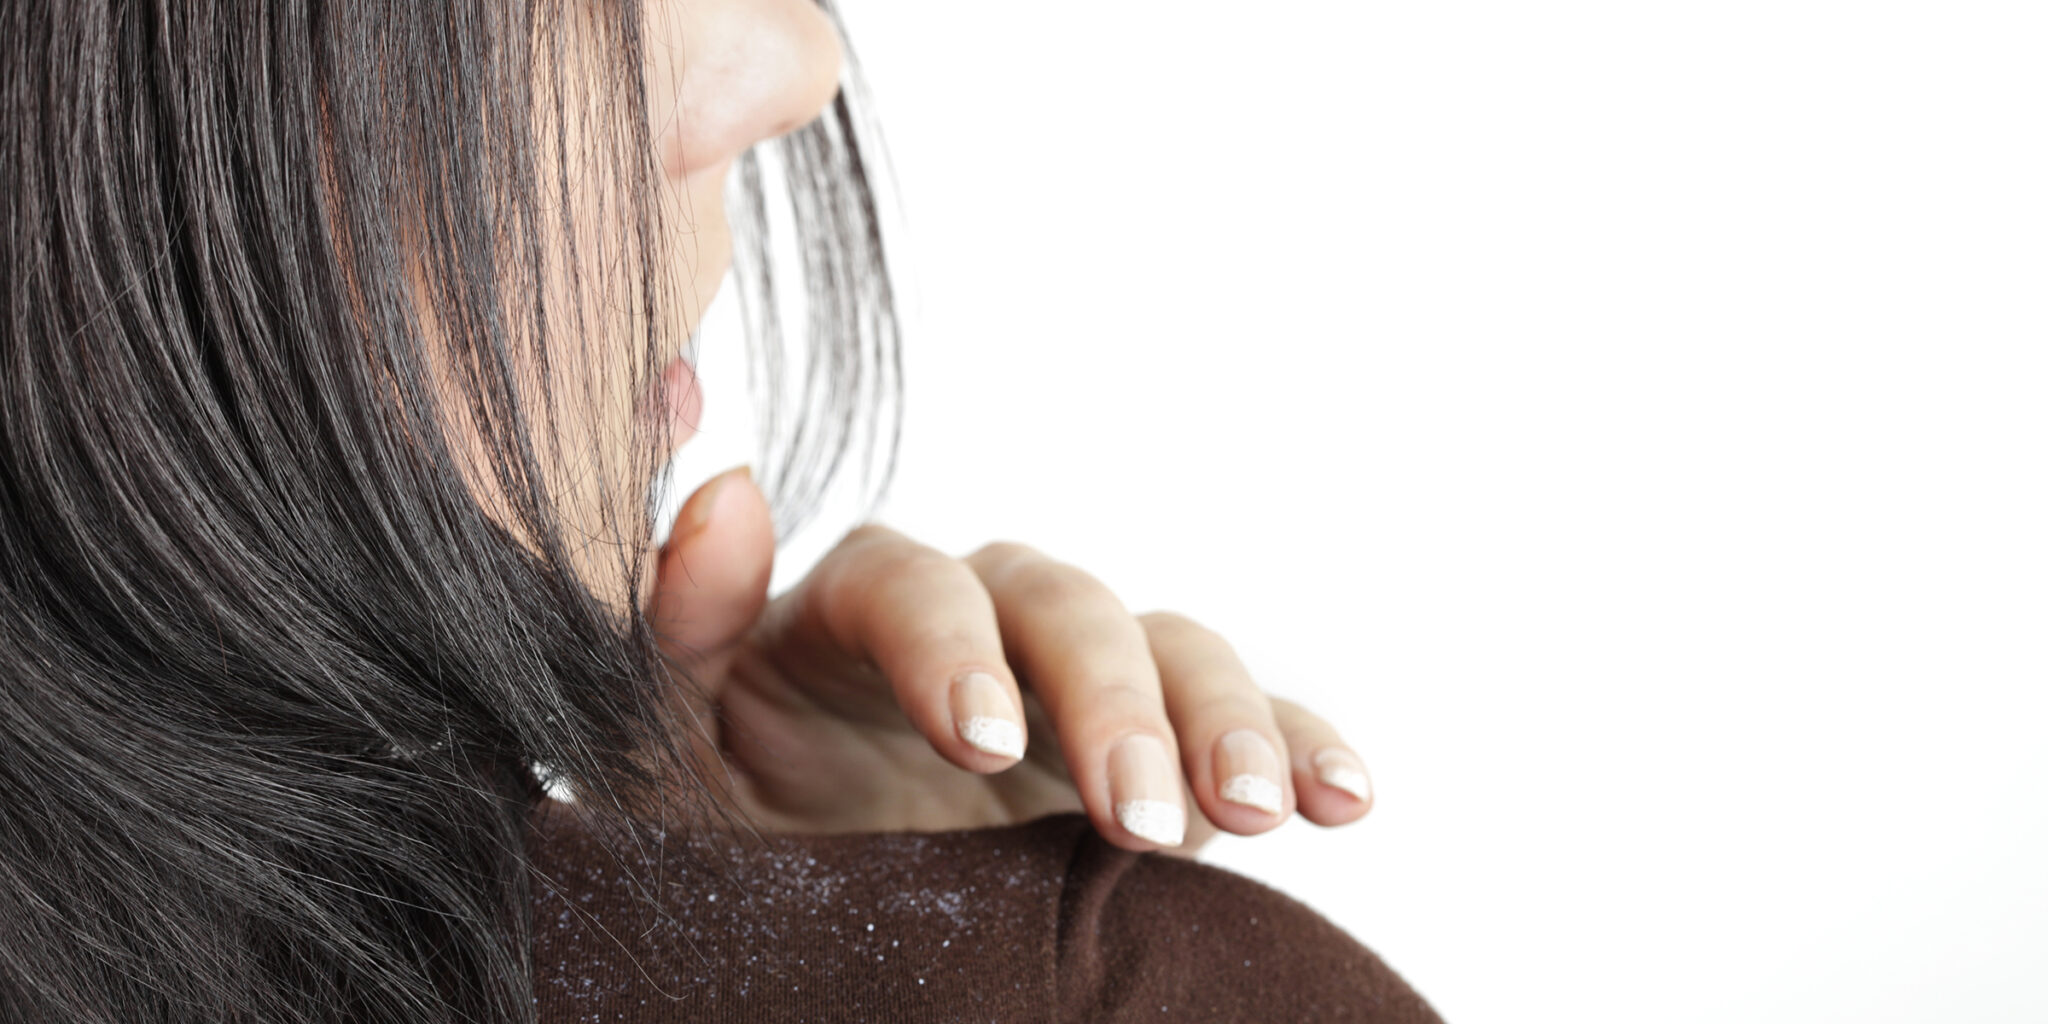 How to Get Rid of Dandruff as Quickly as Possible